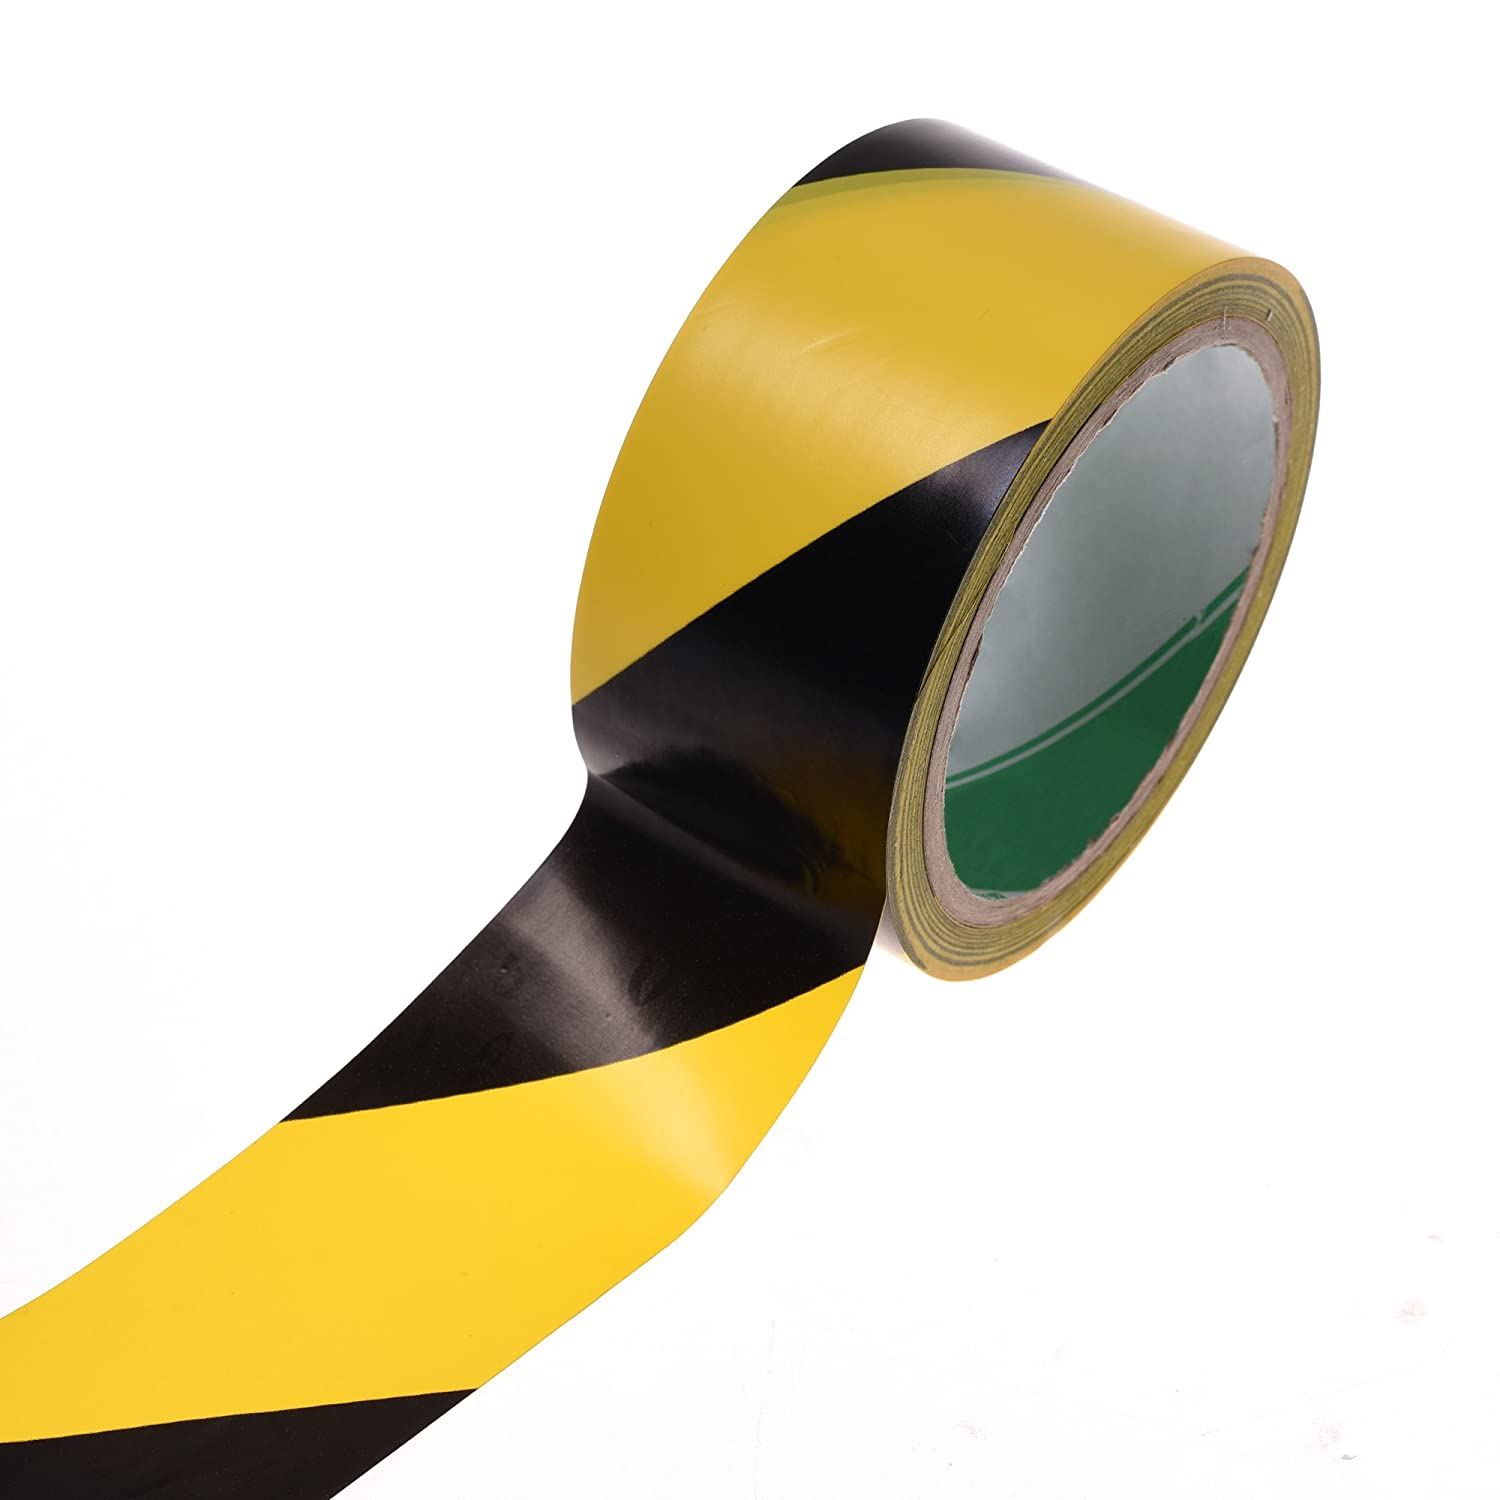 Cosmos Adhesive Black and Yellow Color Hazard Warning Safety Stripe Tape 1 7 8 x 59ft